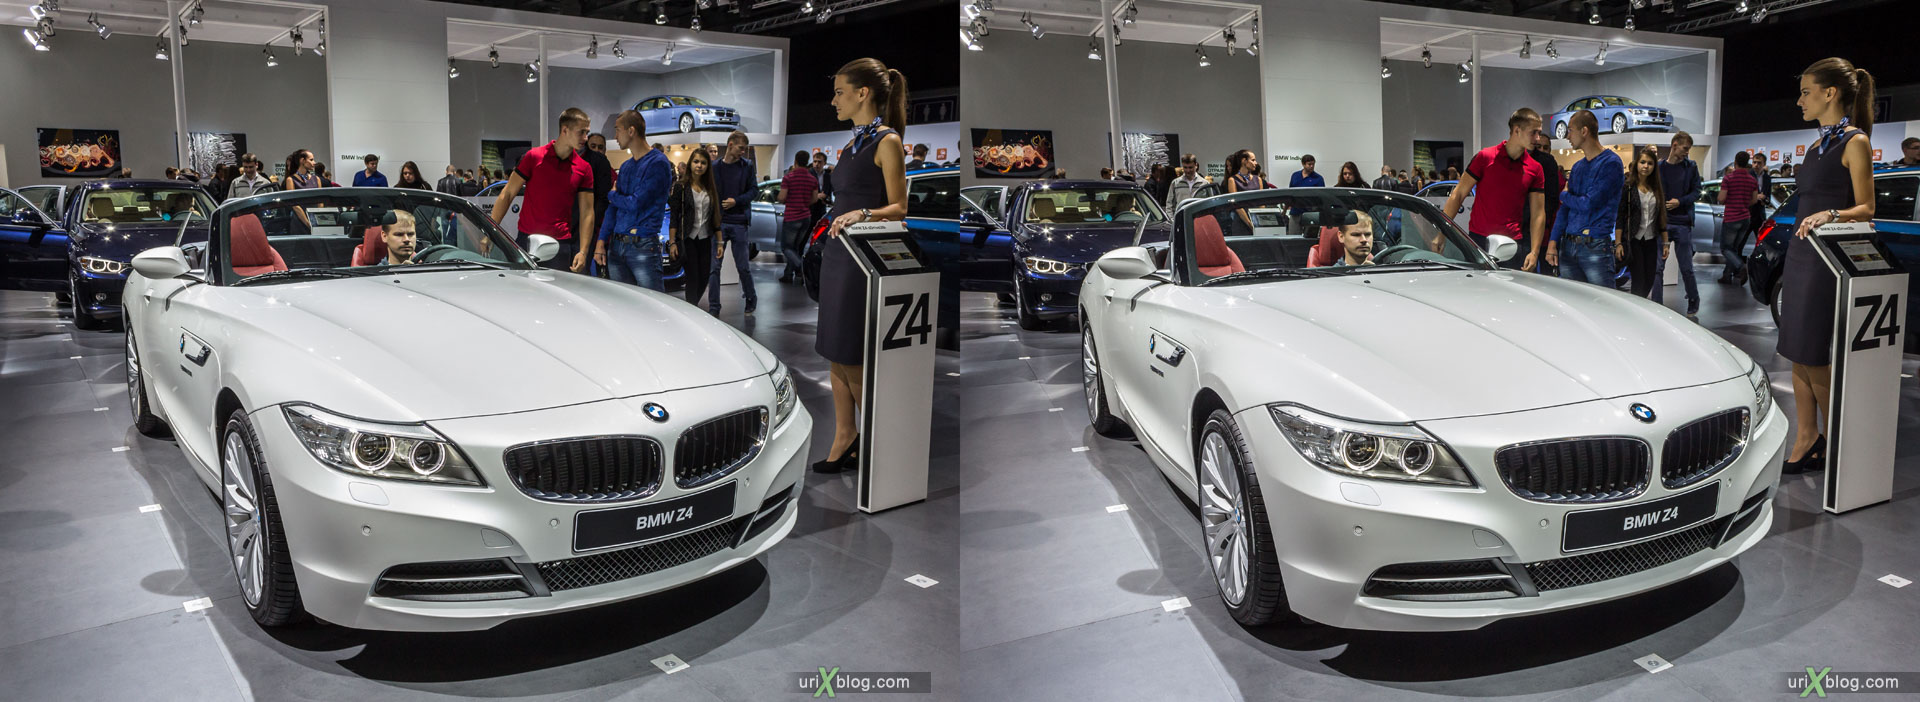 BMW Z4, Moscow International Automobile Salon 2014, MIAS 2014, girls, models, Crocus Expo, Moscow, Russia, 3D, stereo pair, cross-eyed, crossview, cross view stereo pair, stereoscopic, 2014